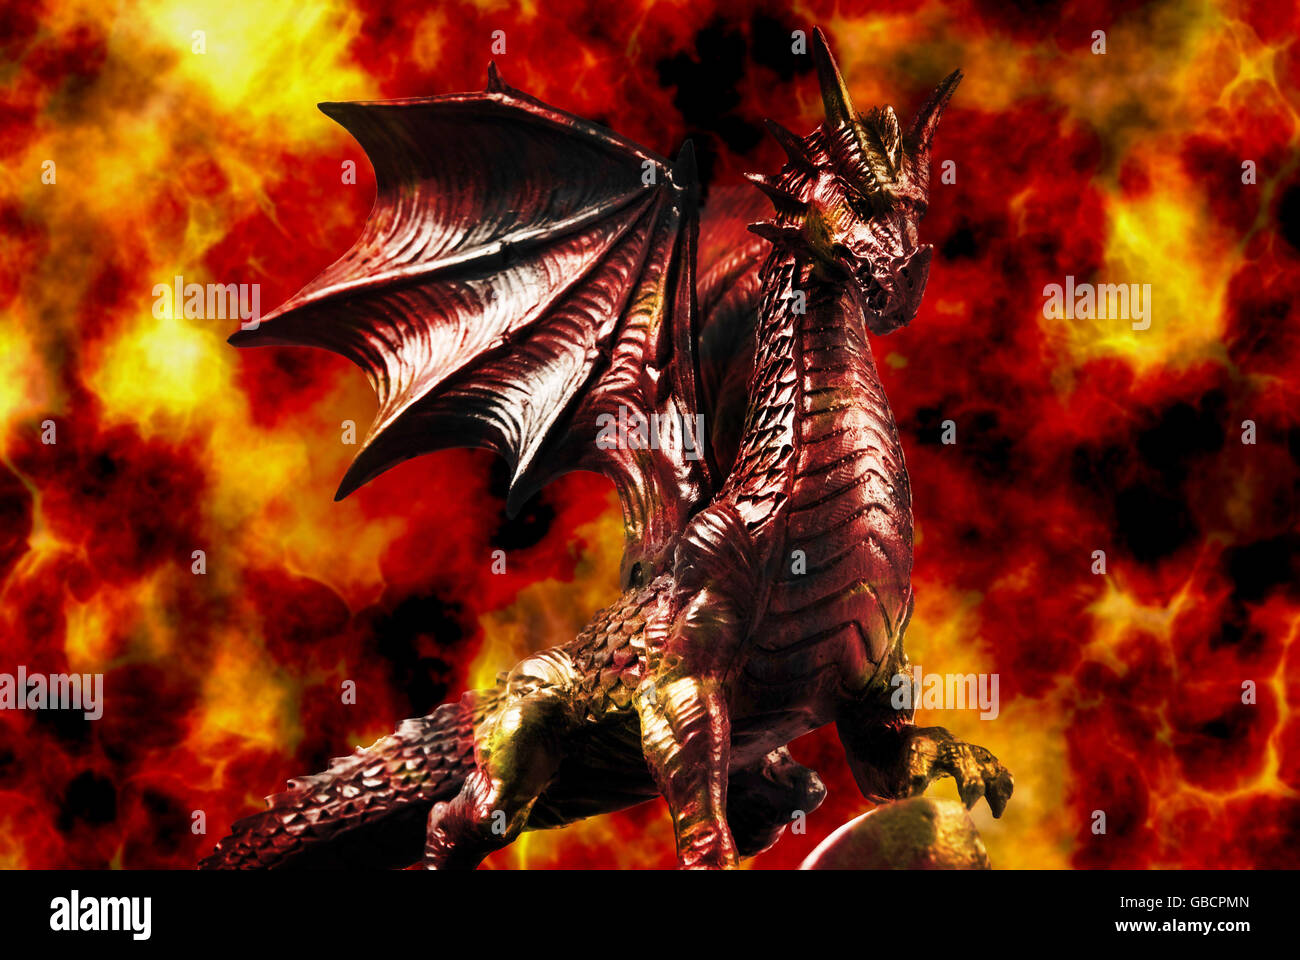 dragon with fire background - Stock Image